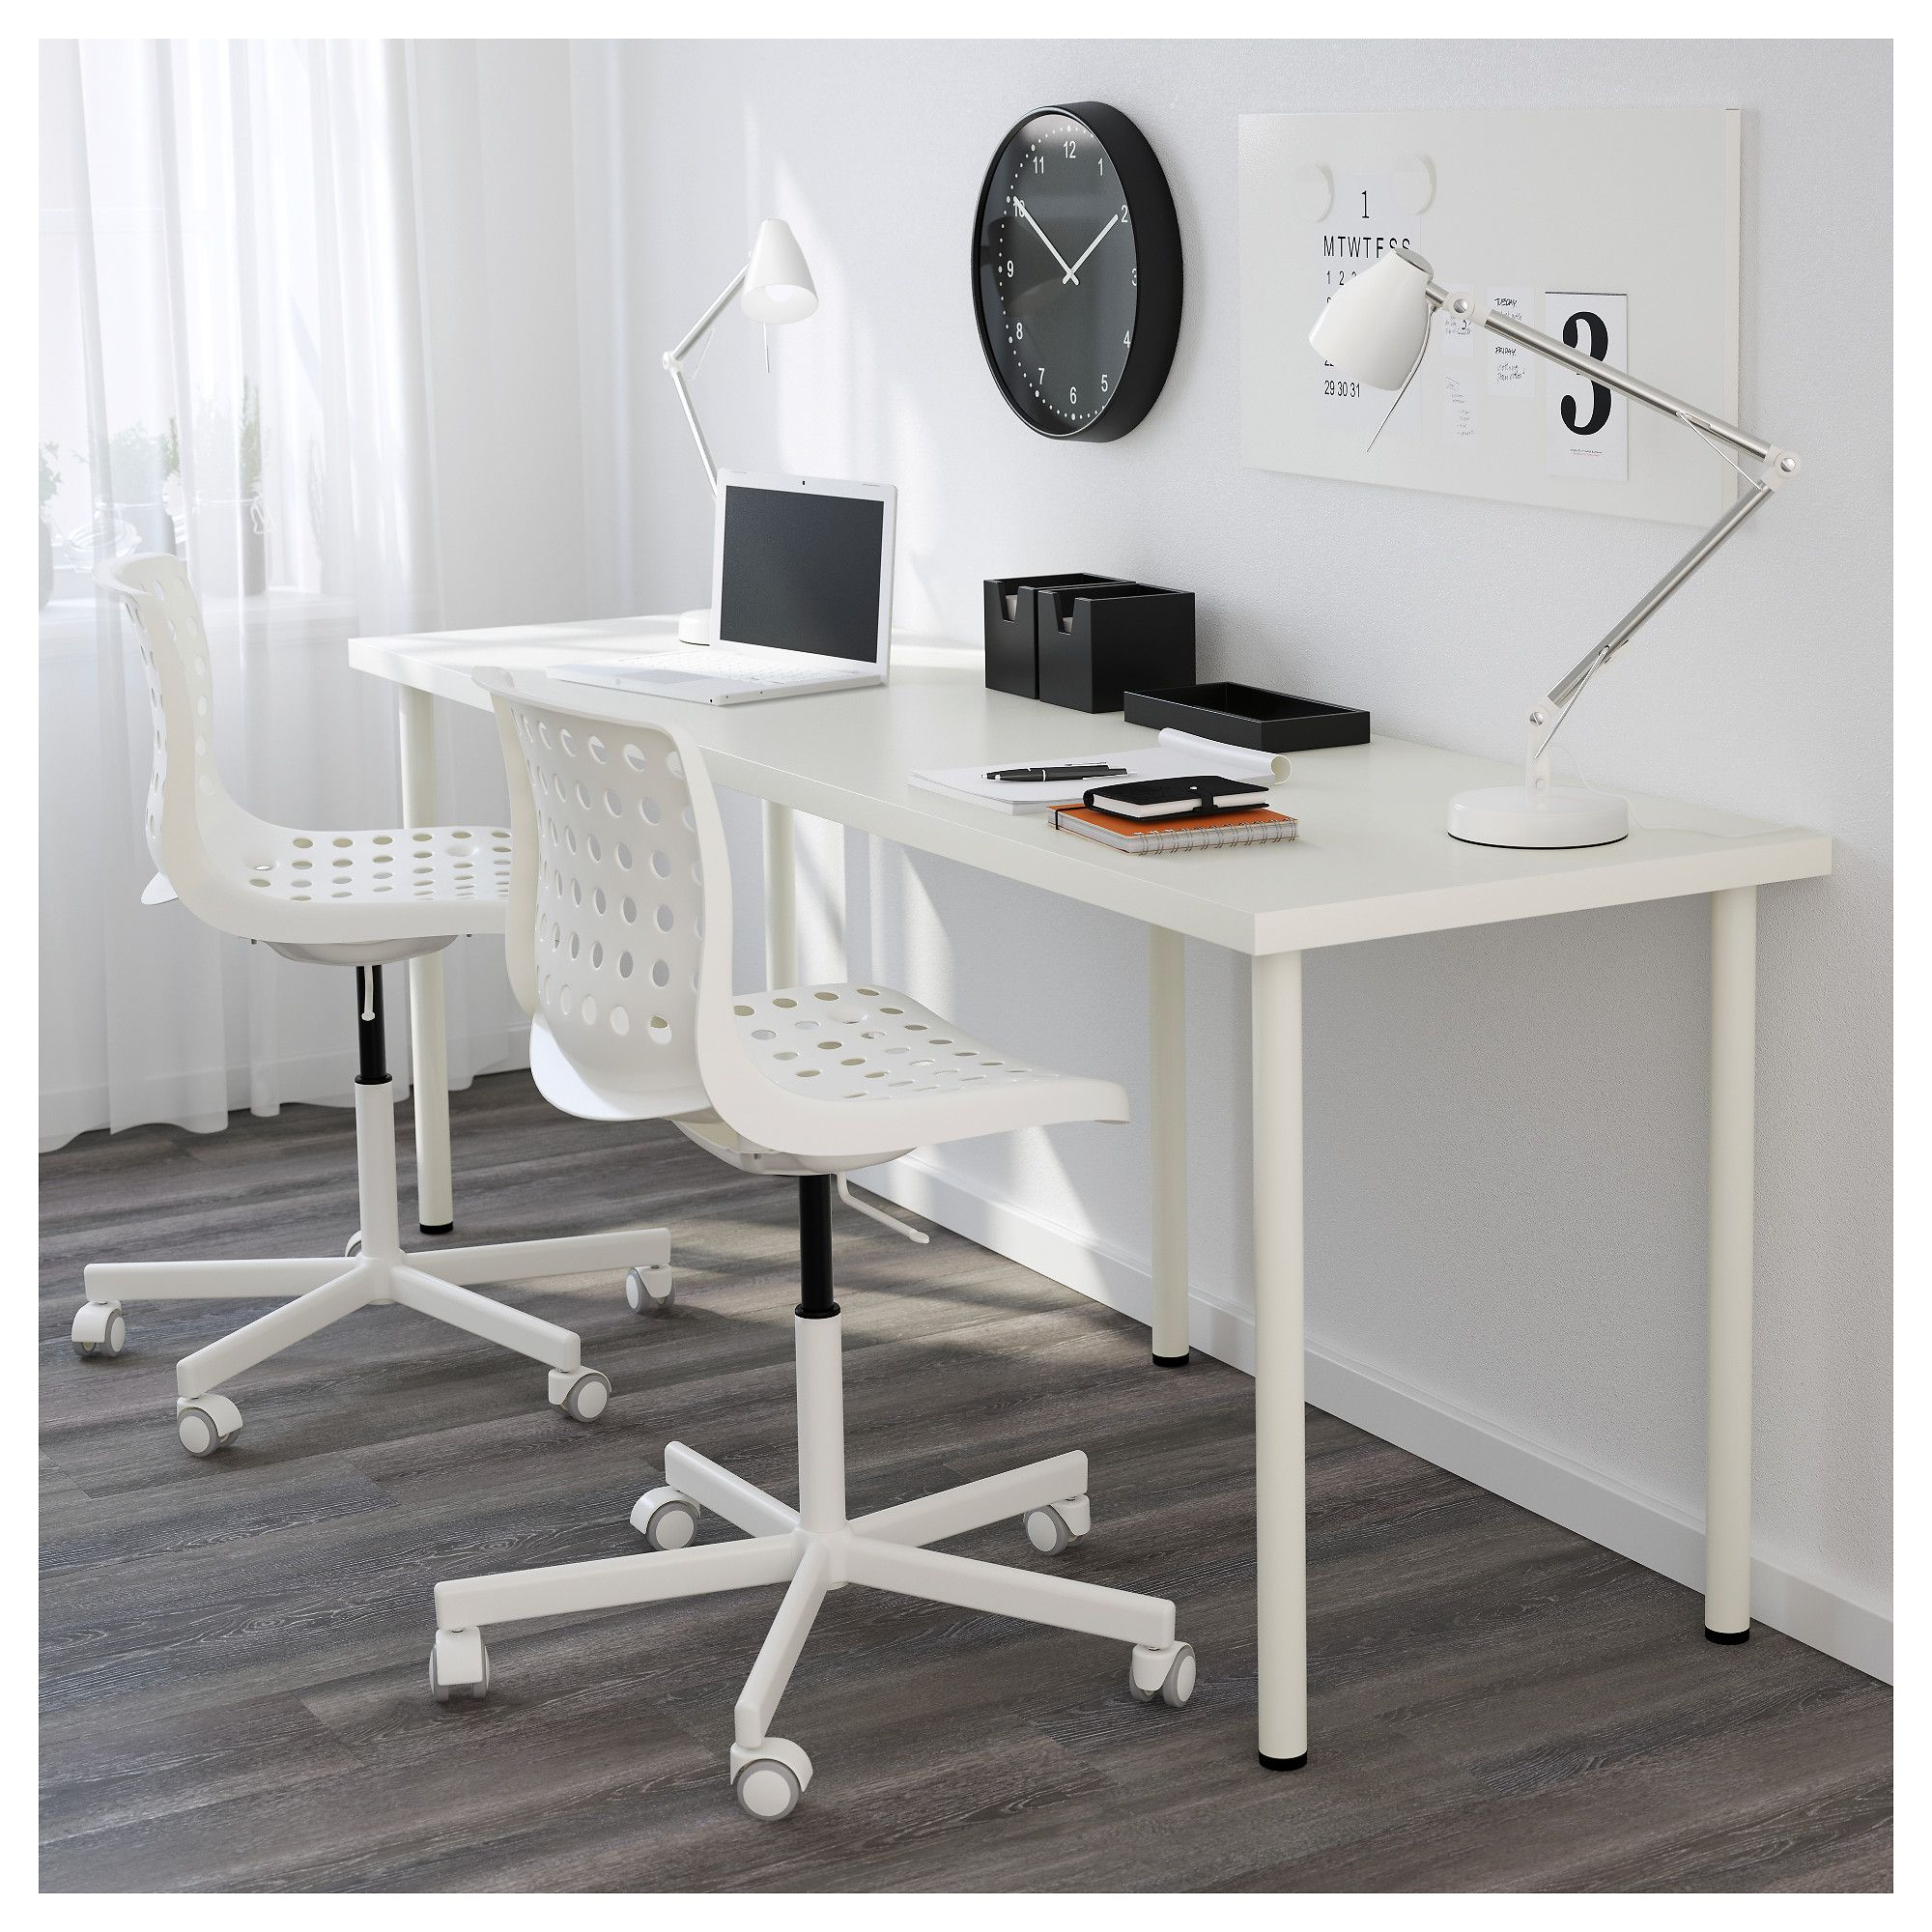 Linnmon Adils Linnmon Table White 200 X 60 Cm My Future Sewing Room